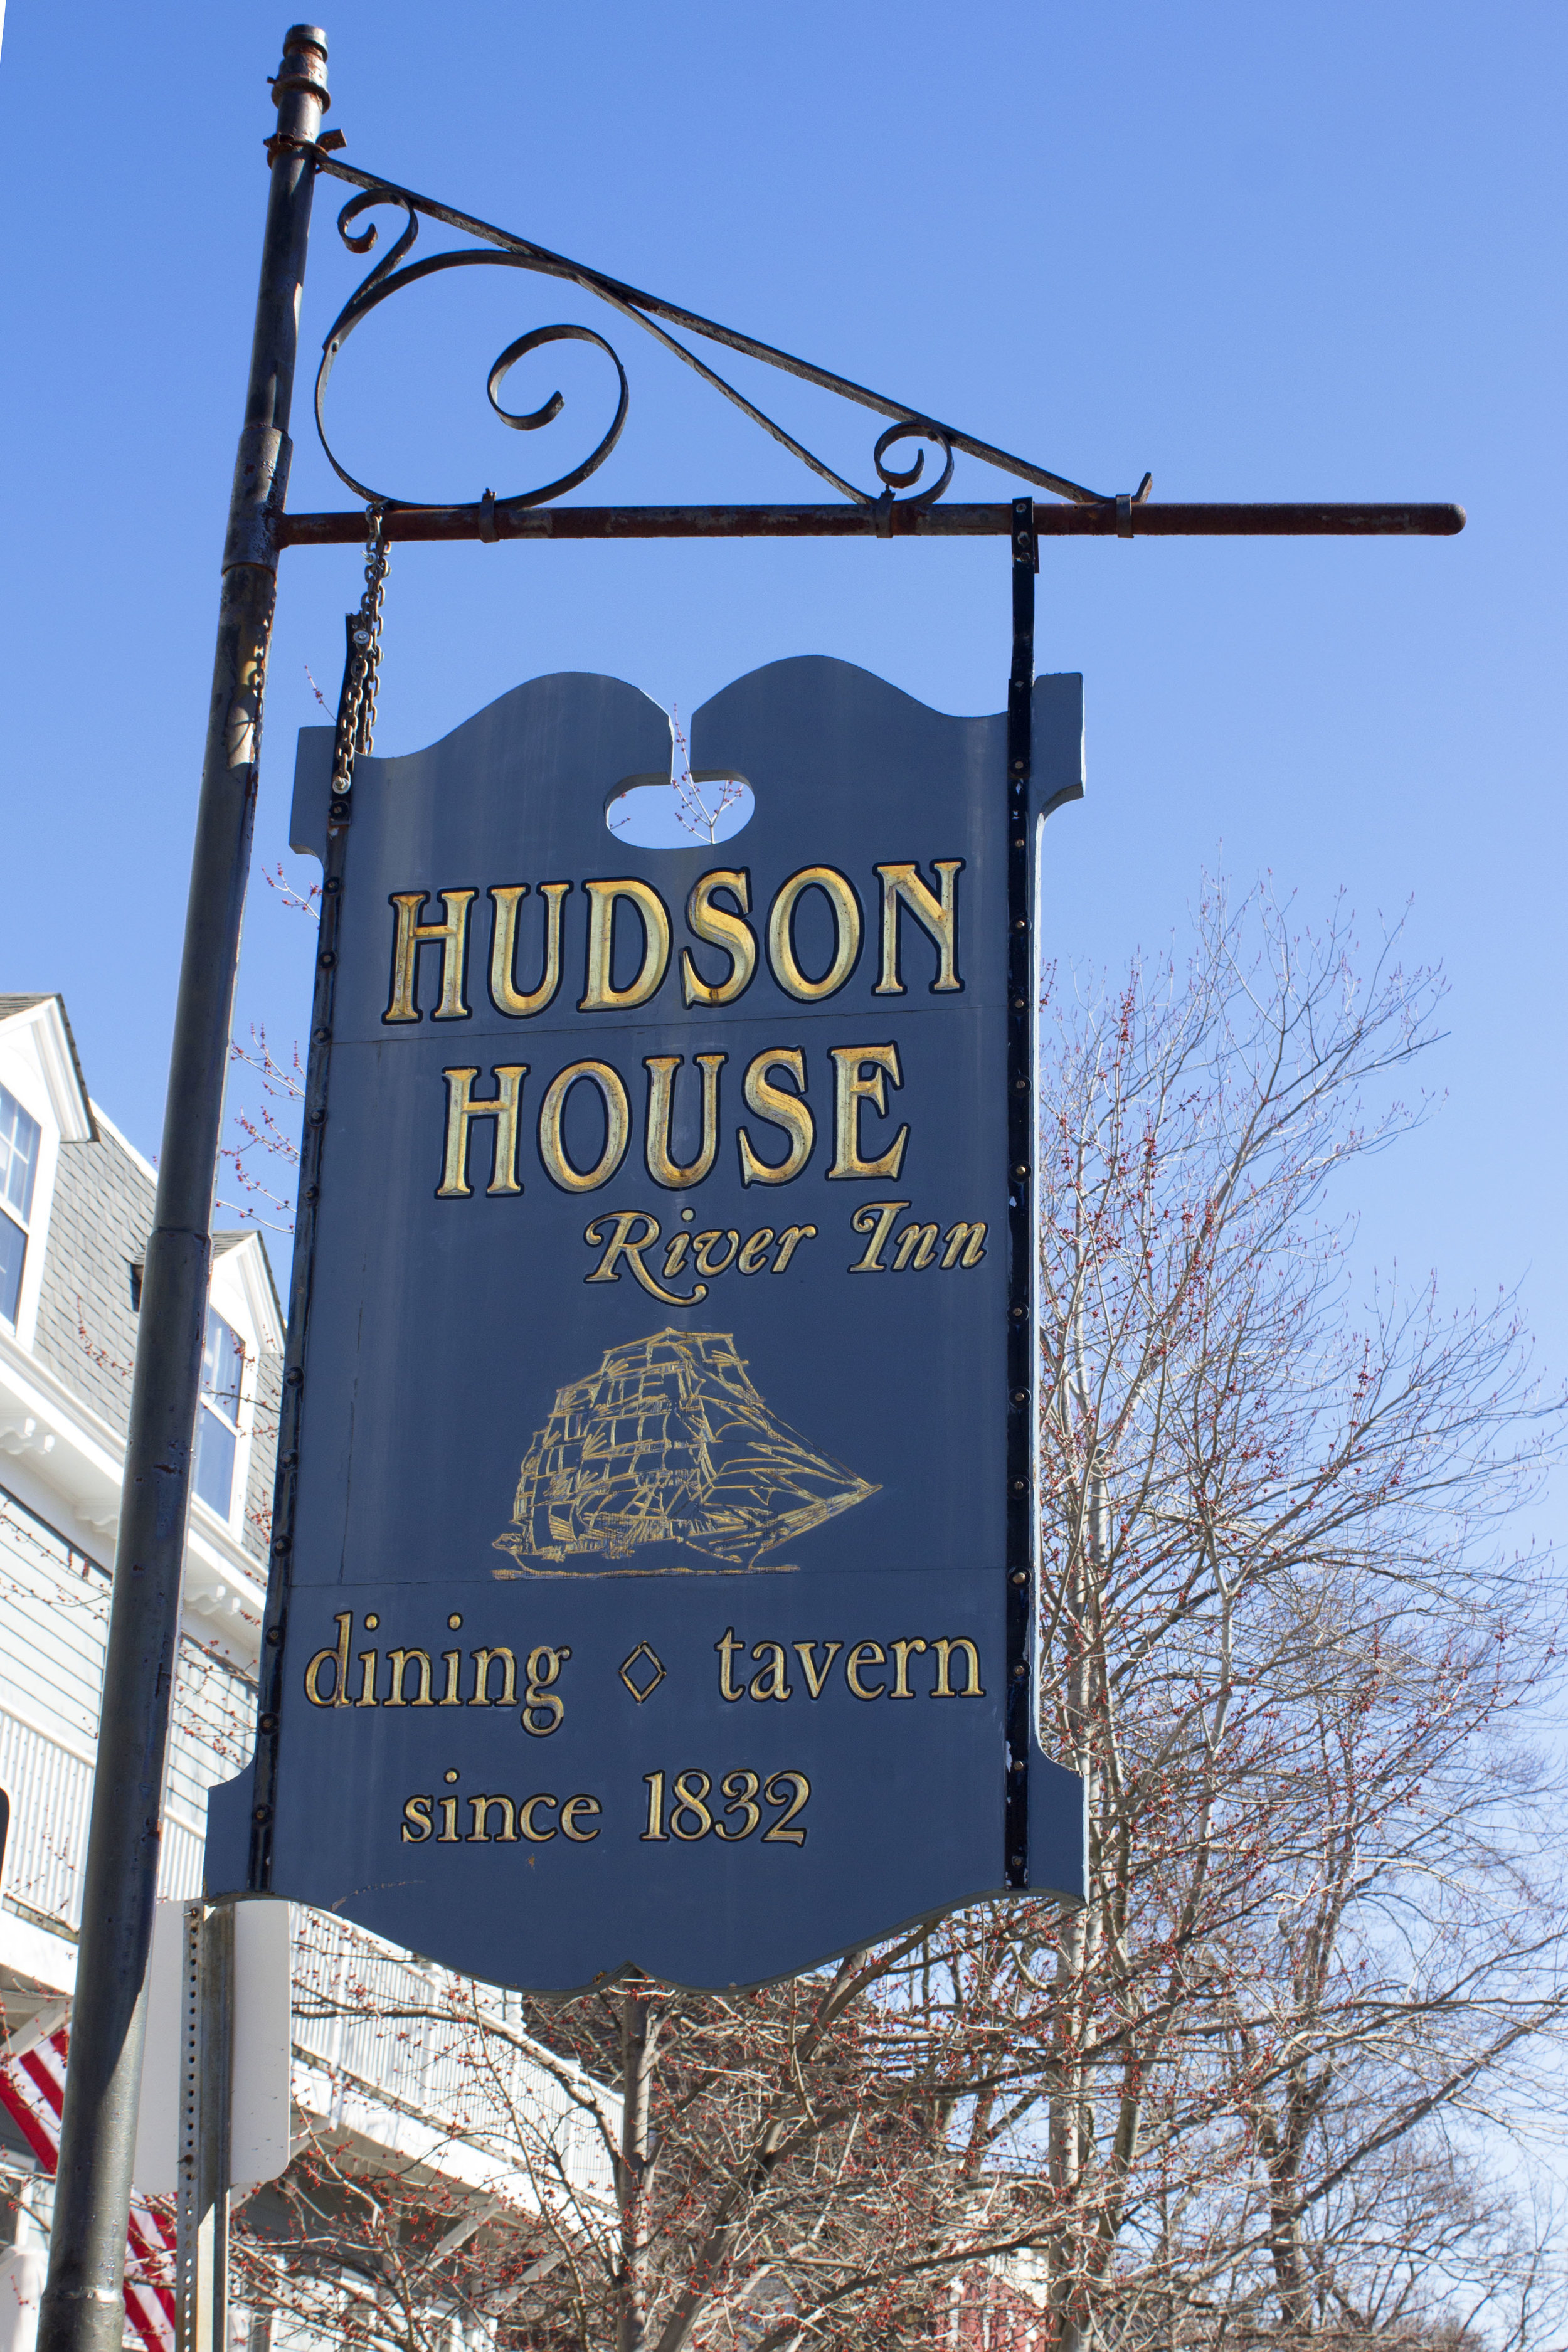 Krity S x Cold Springs x Hudson House Inn_11.jpg